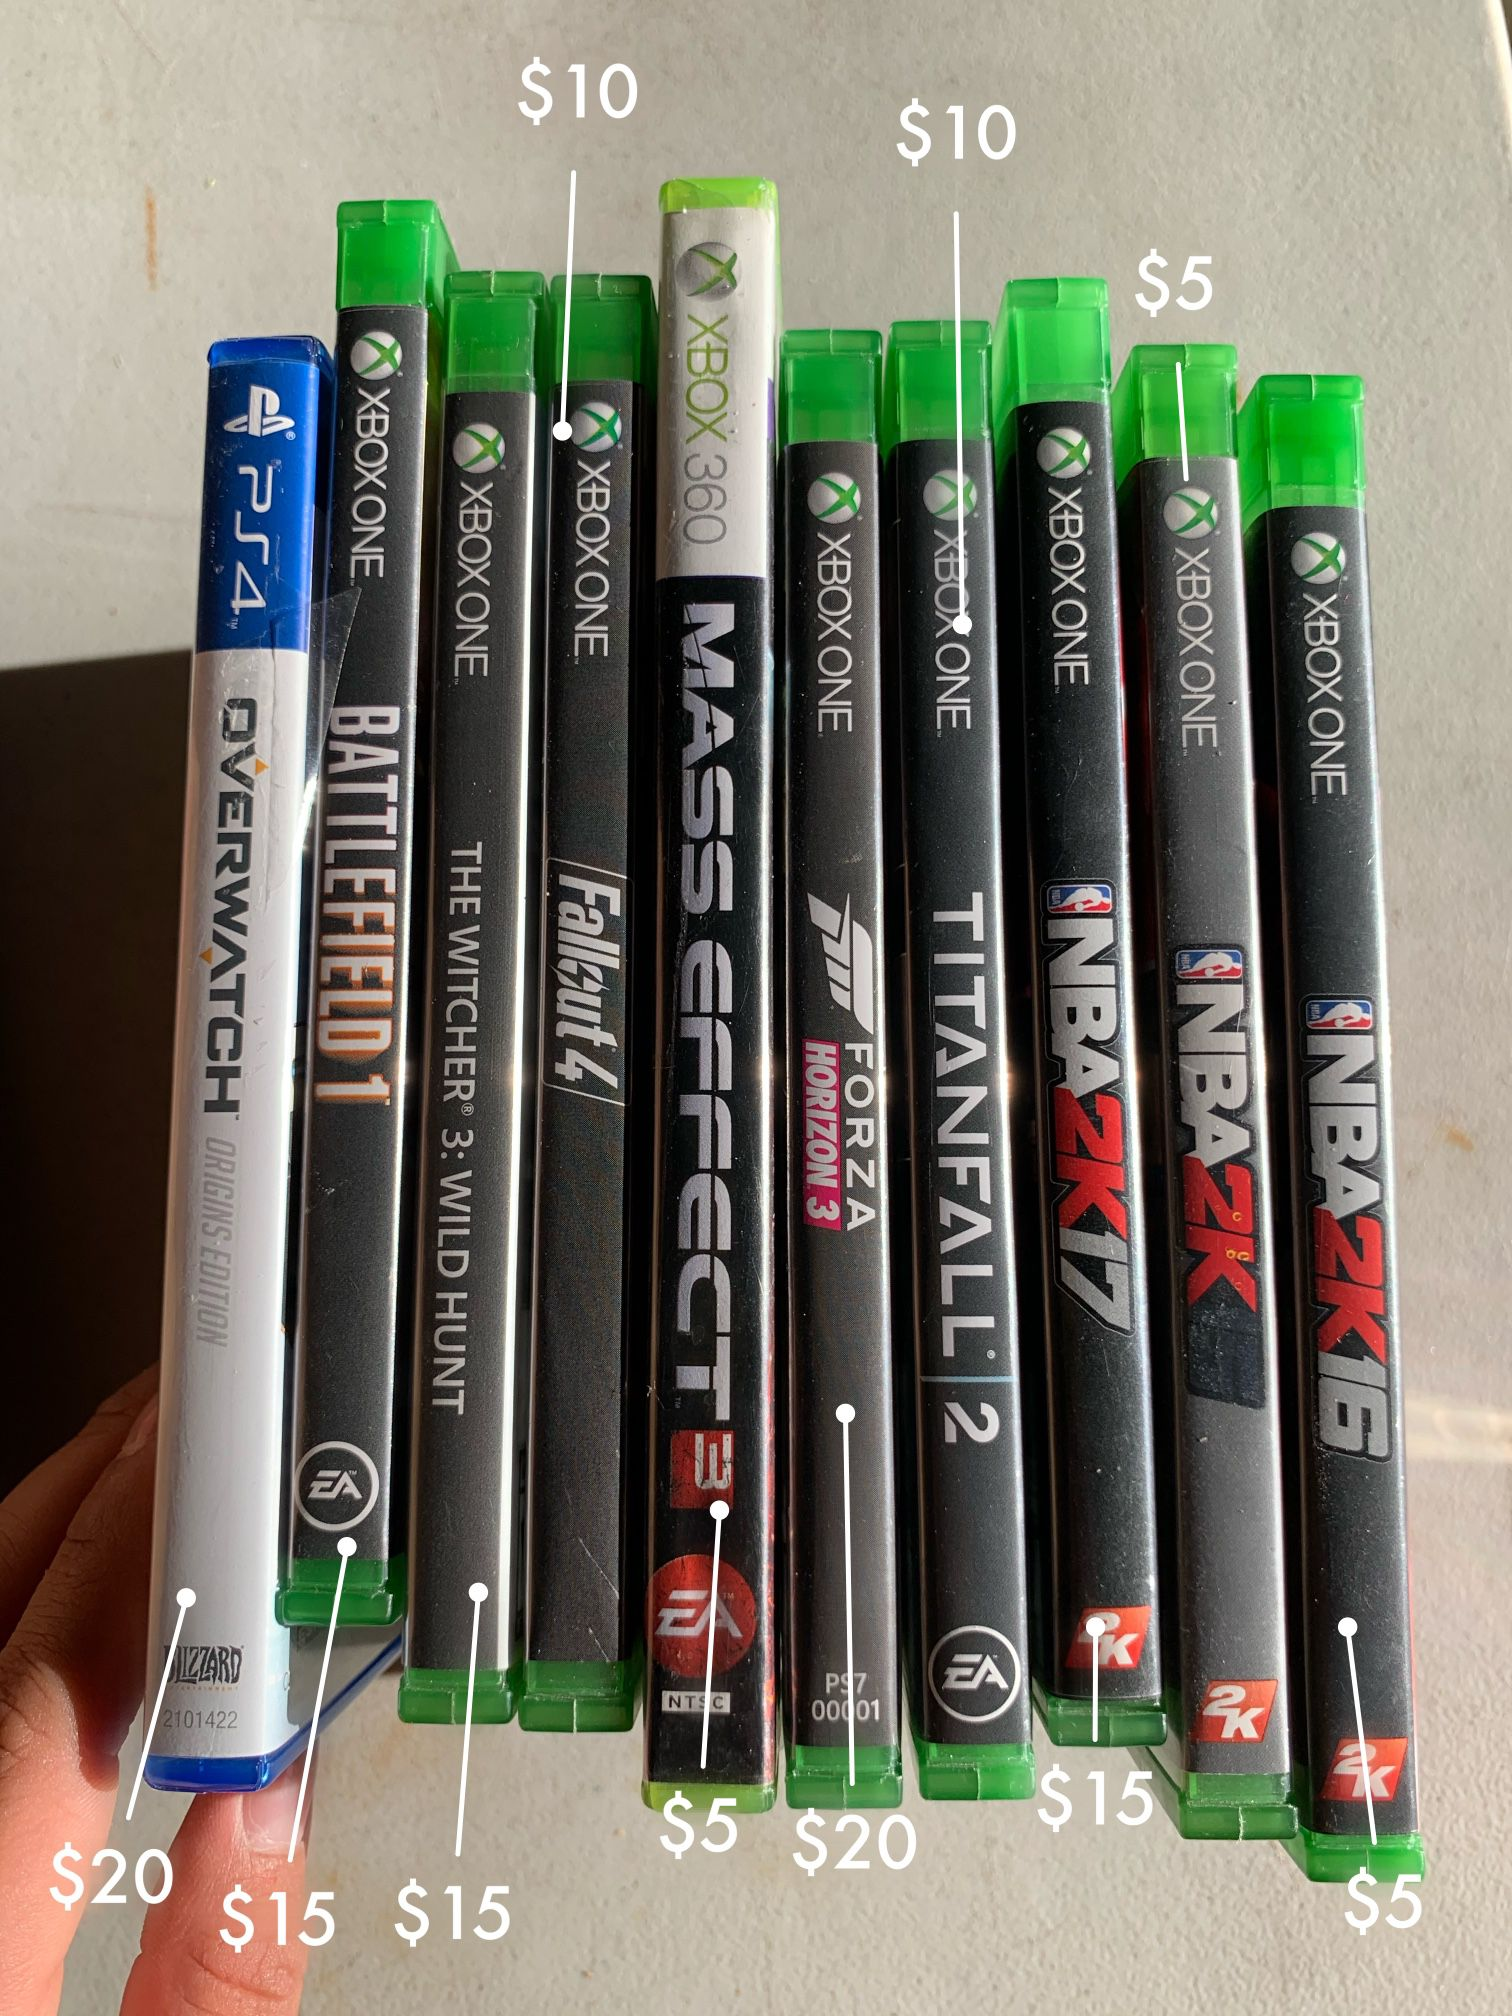 PS4 and Xbox games for sale!